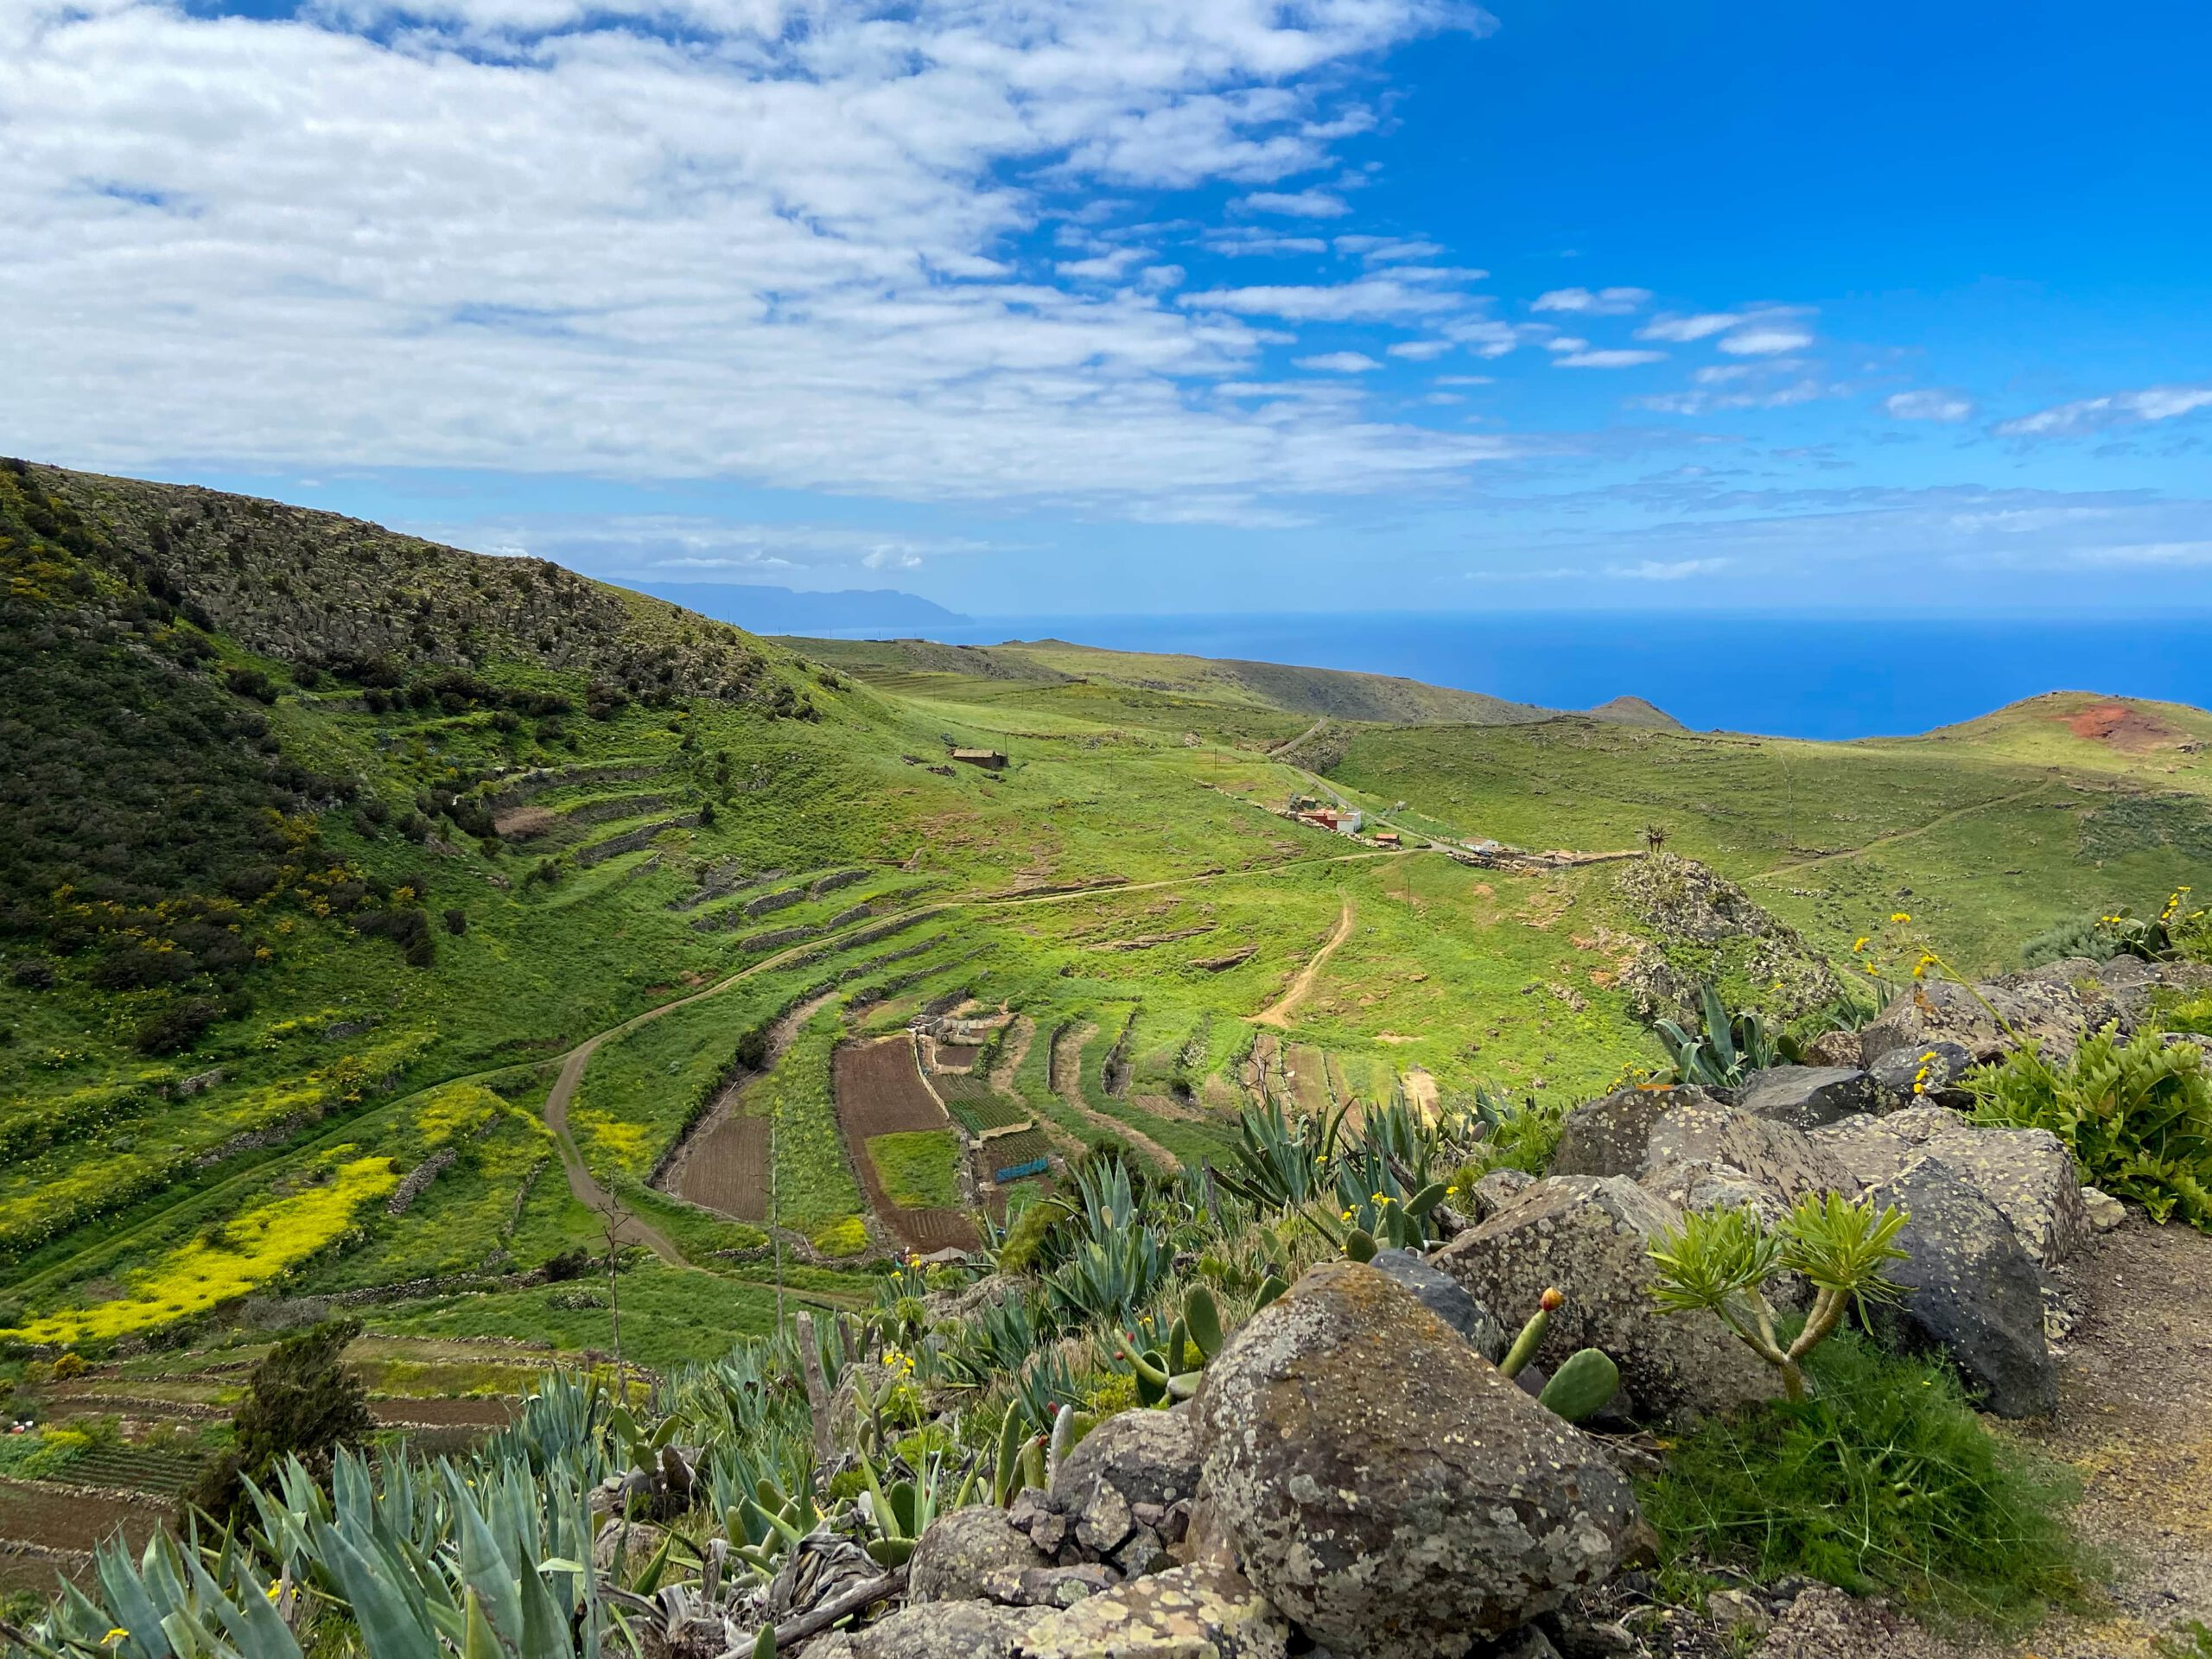 View of the plateau, the break-off edge and the neighbouring island of La Gomera